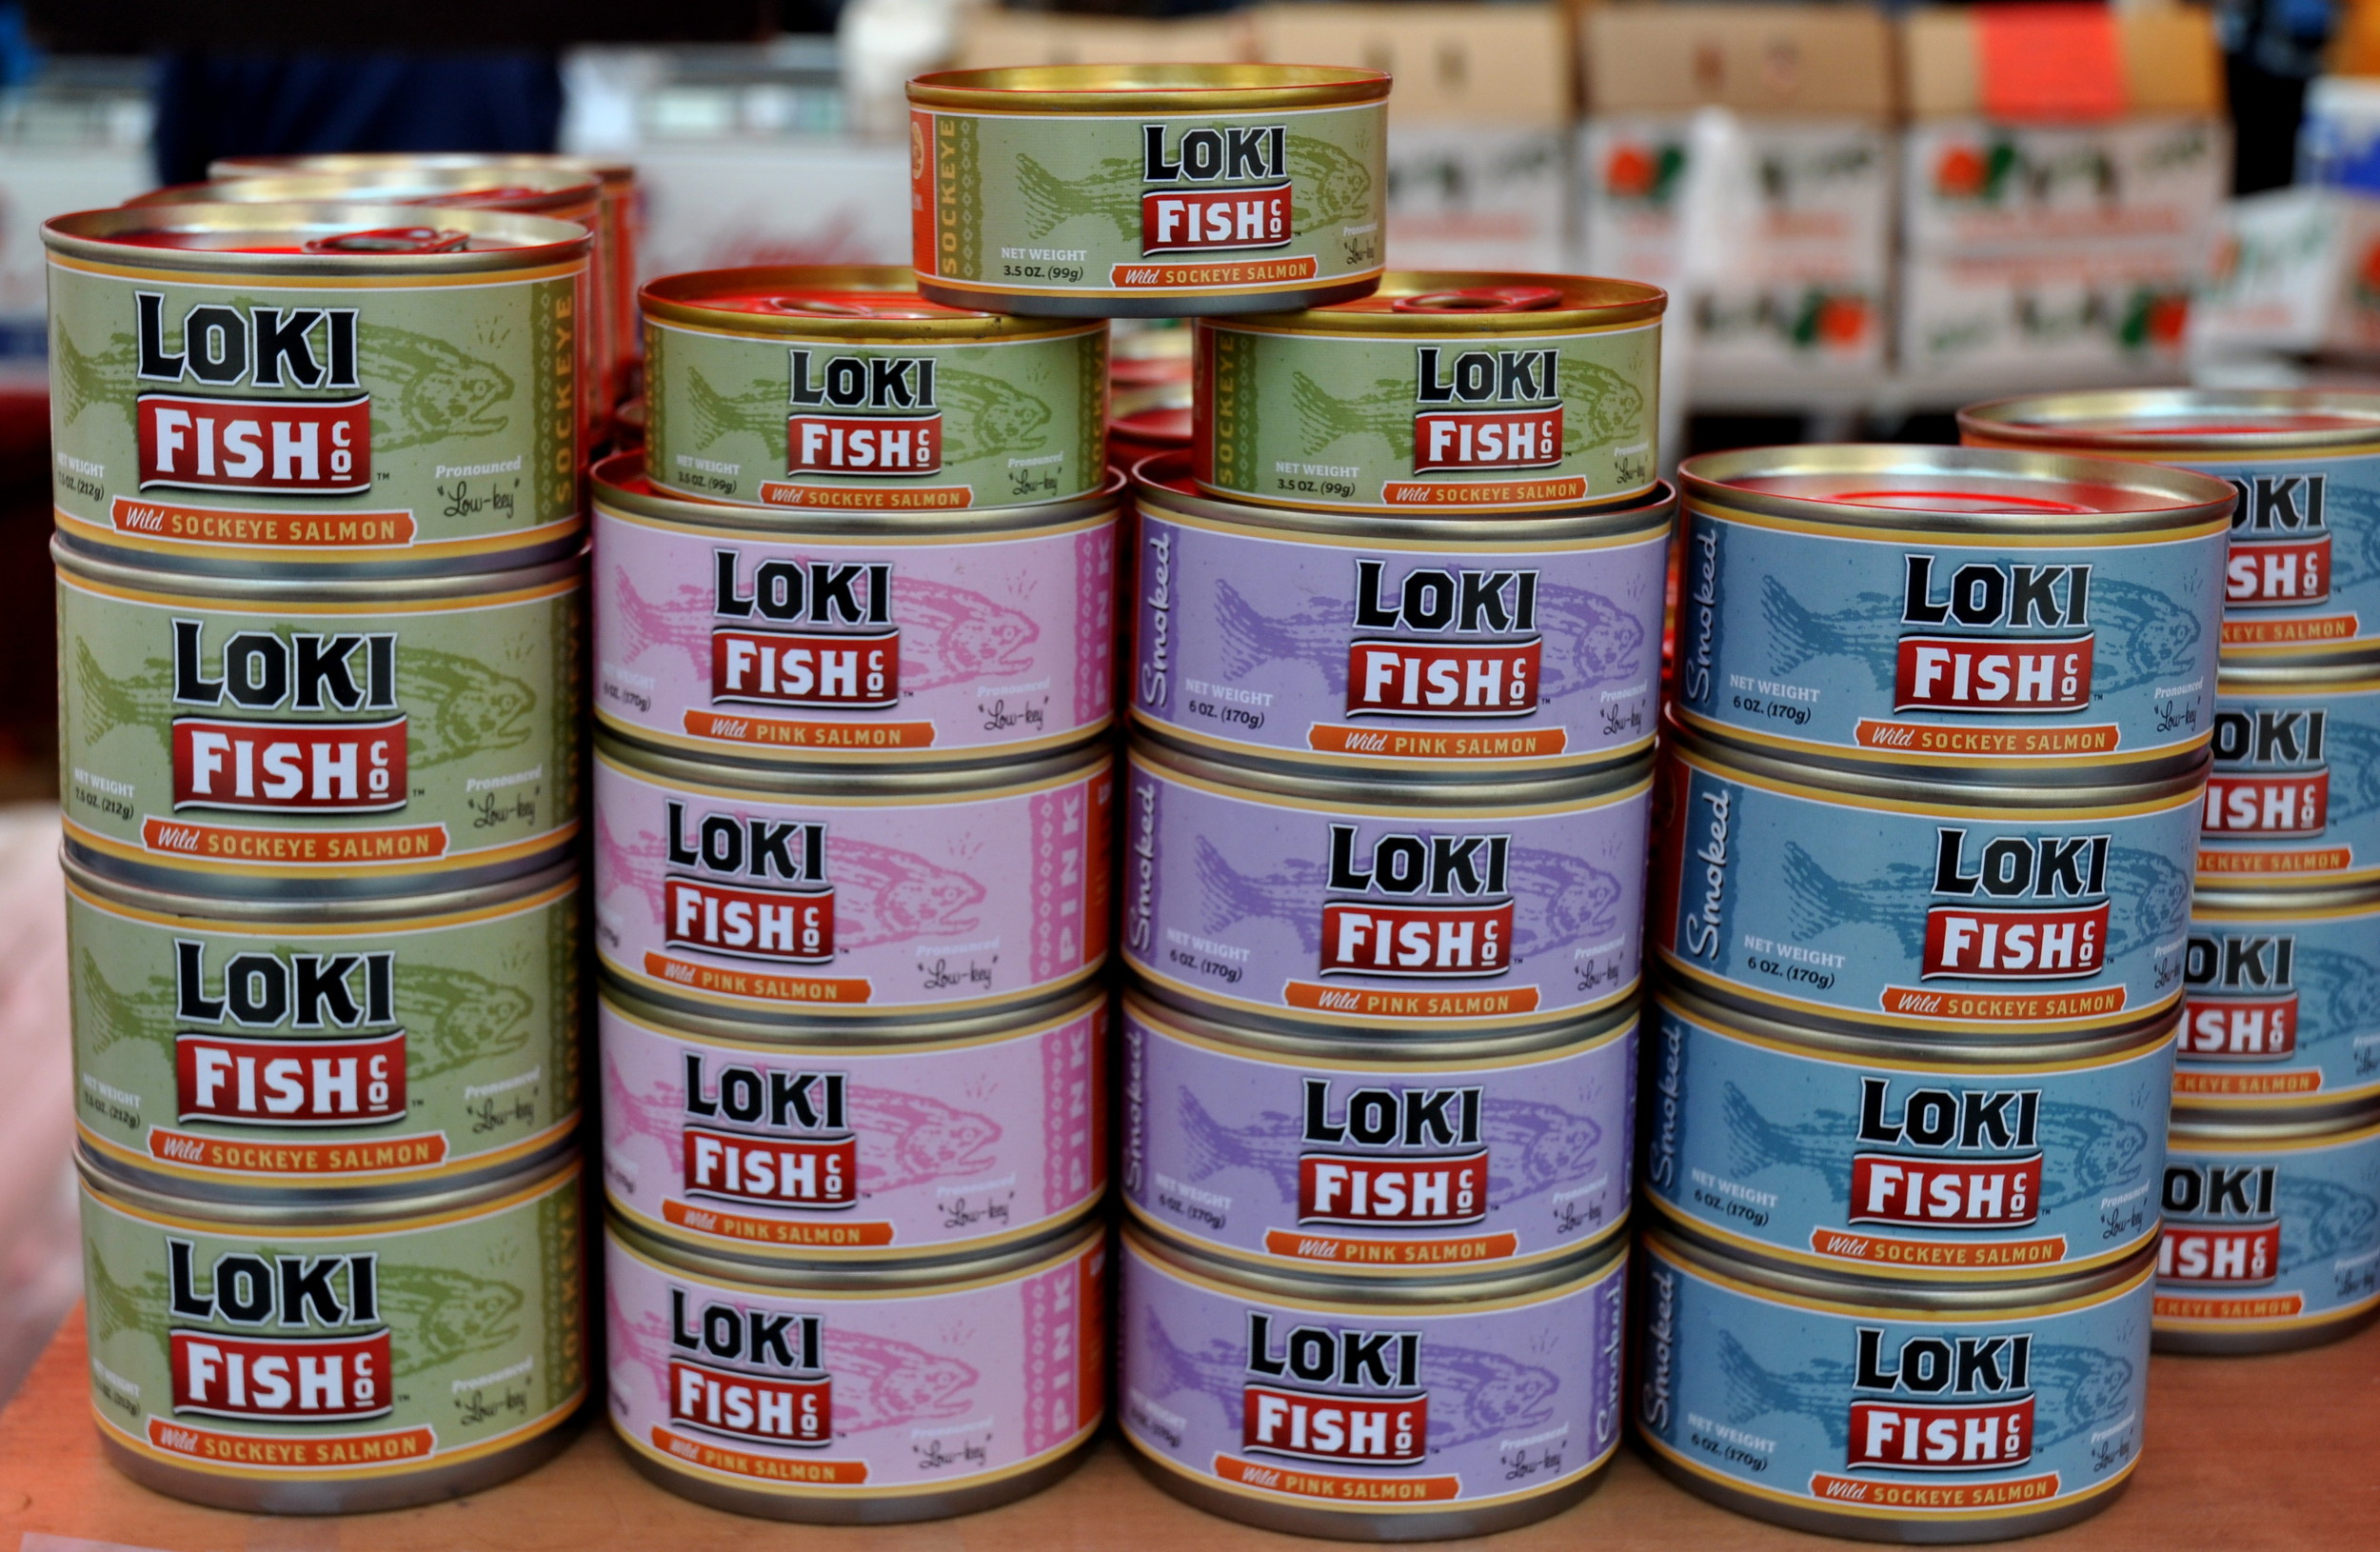 Canned salmon from Loki Fish. Photo copyright 2011 by Zachary D. Lyons.